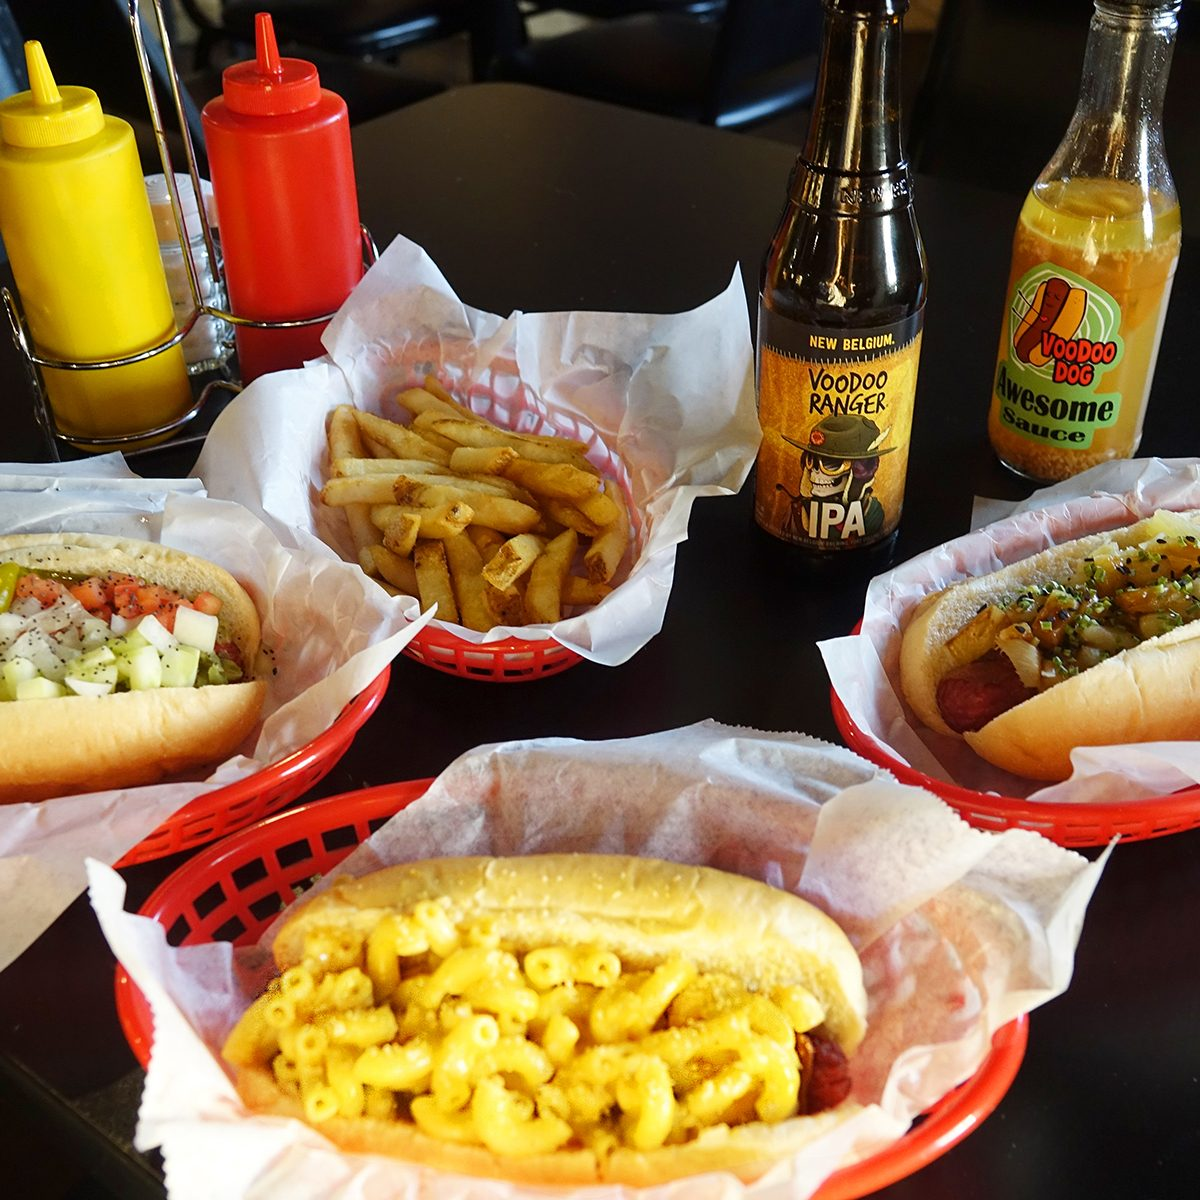 VooDoo Dogs table spread